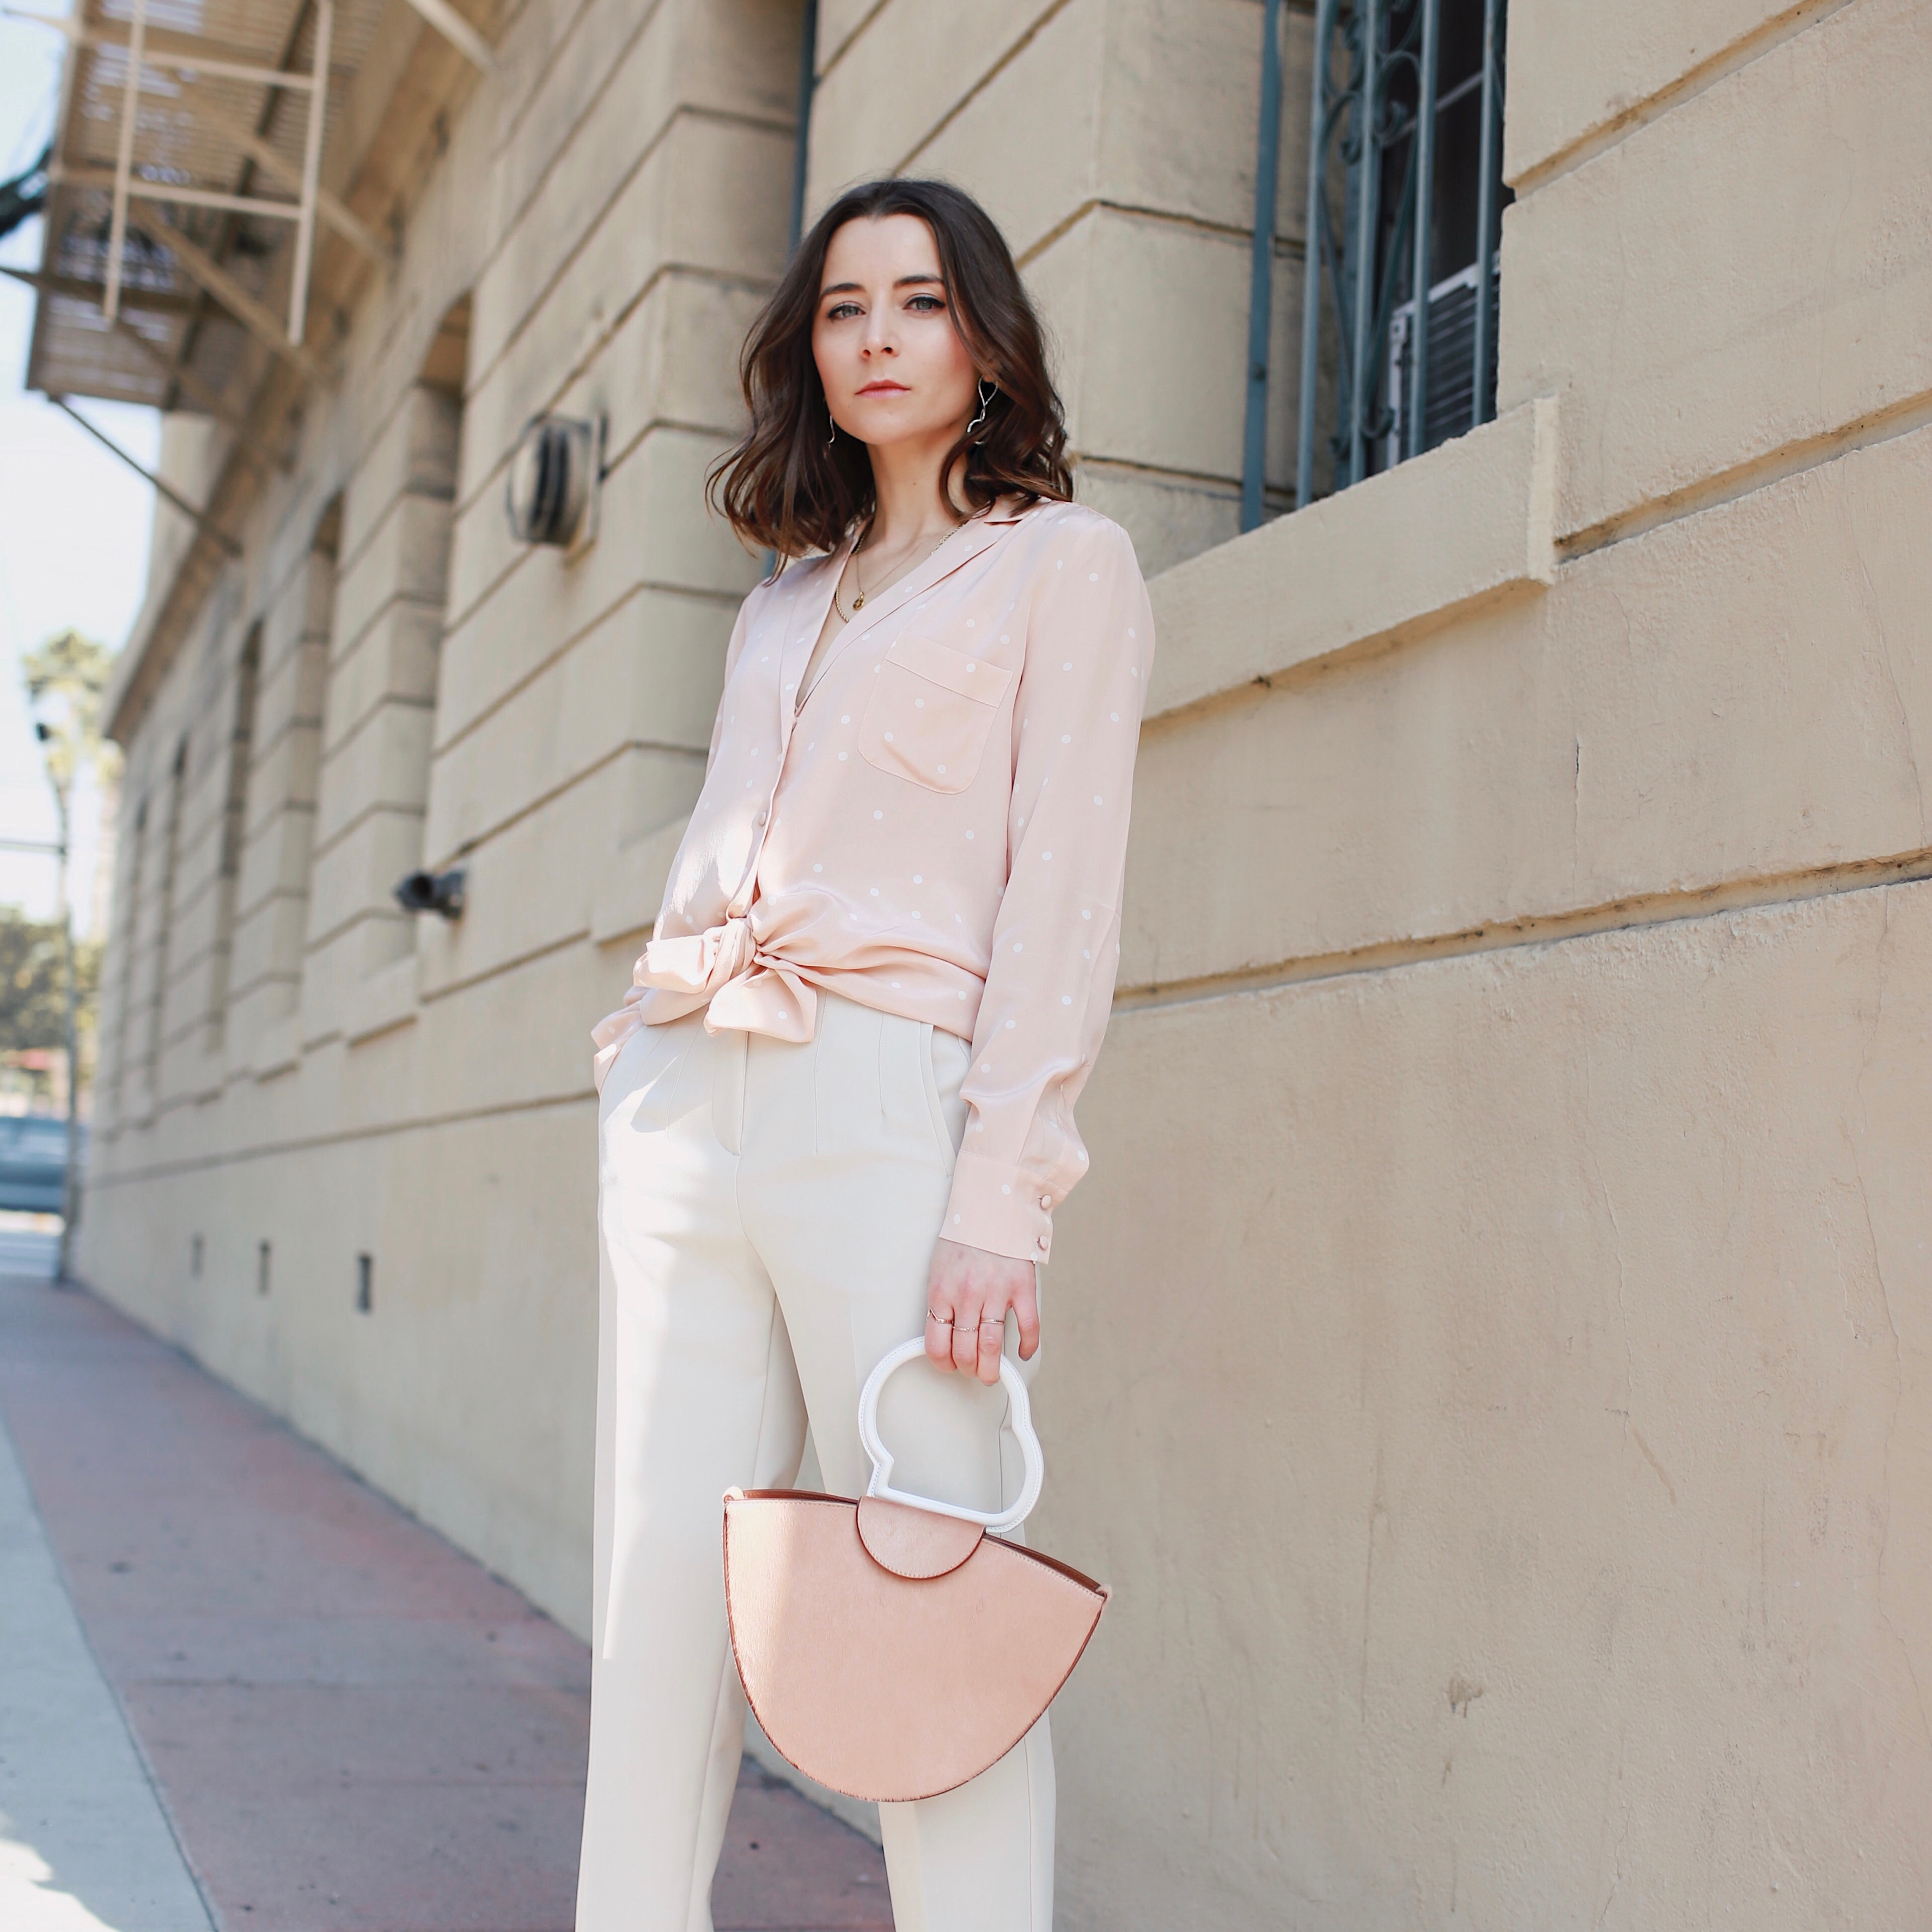 neutral look. most instagrammable bags: designed by the British label: Danse Lente. Danse Lente review: affordable It bags made of high-quality leather and with a great attention to details. Worn by fashion editors and fashion bloggers worldwide. More on Houseofcomil.com. By Julia Comil French fashion blogger in Los Angeles